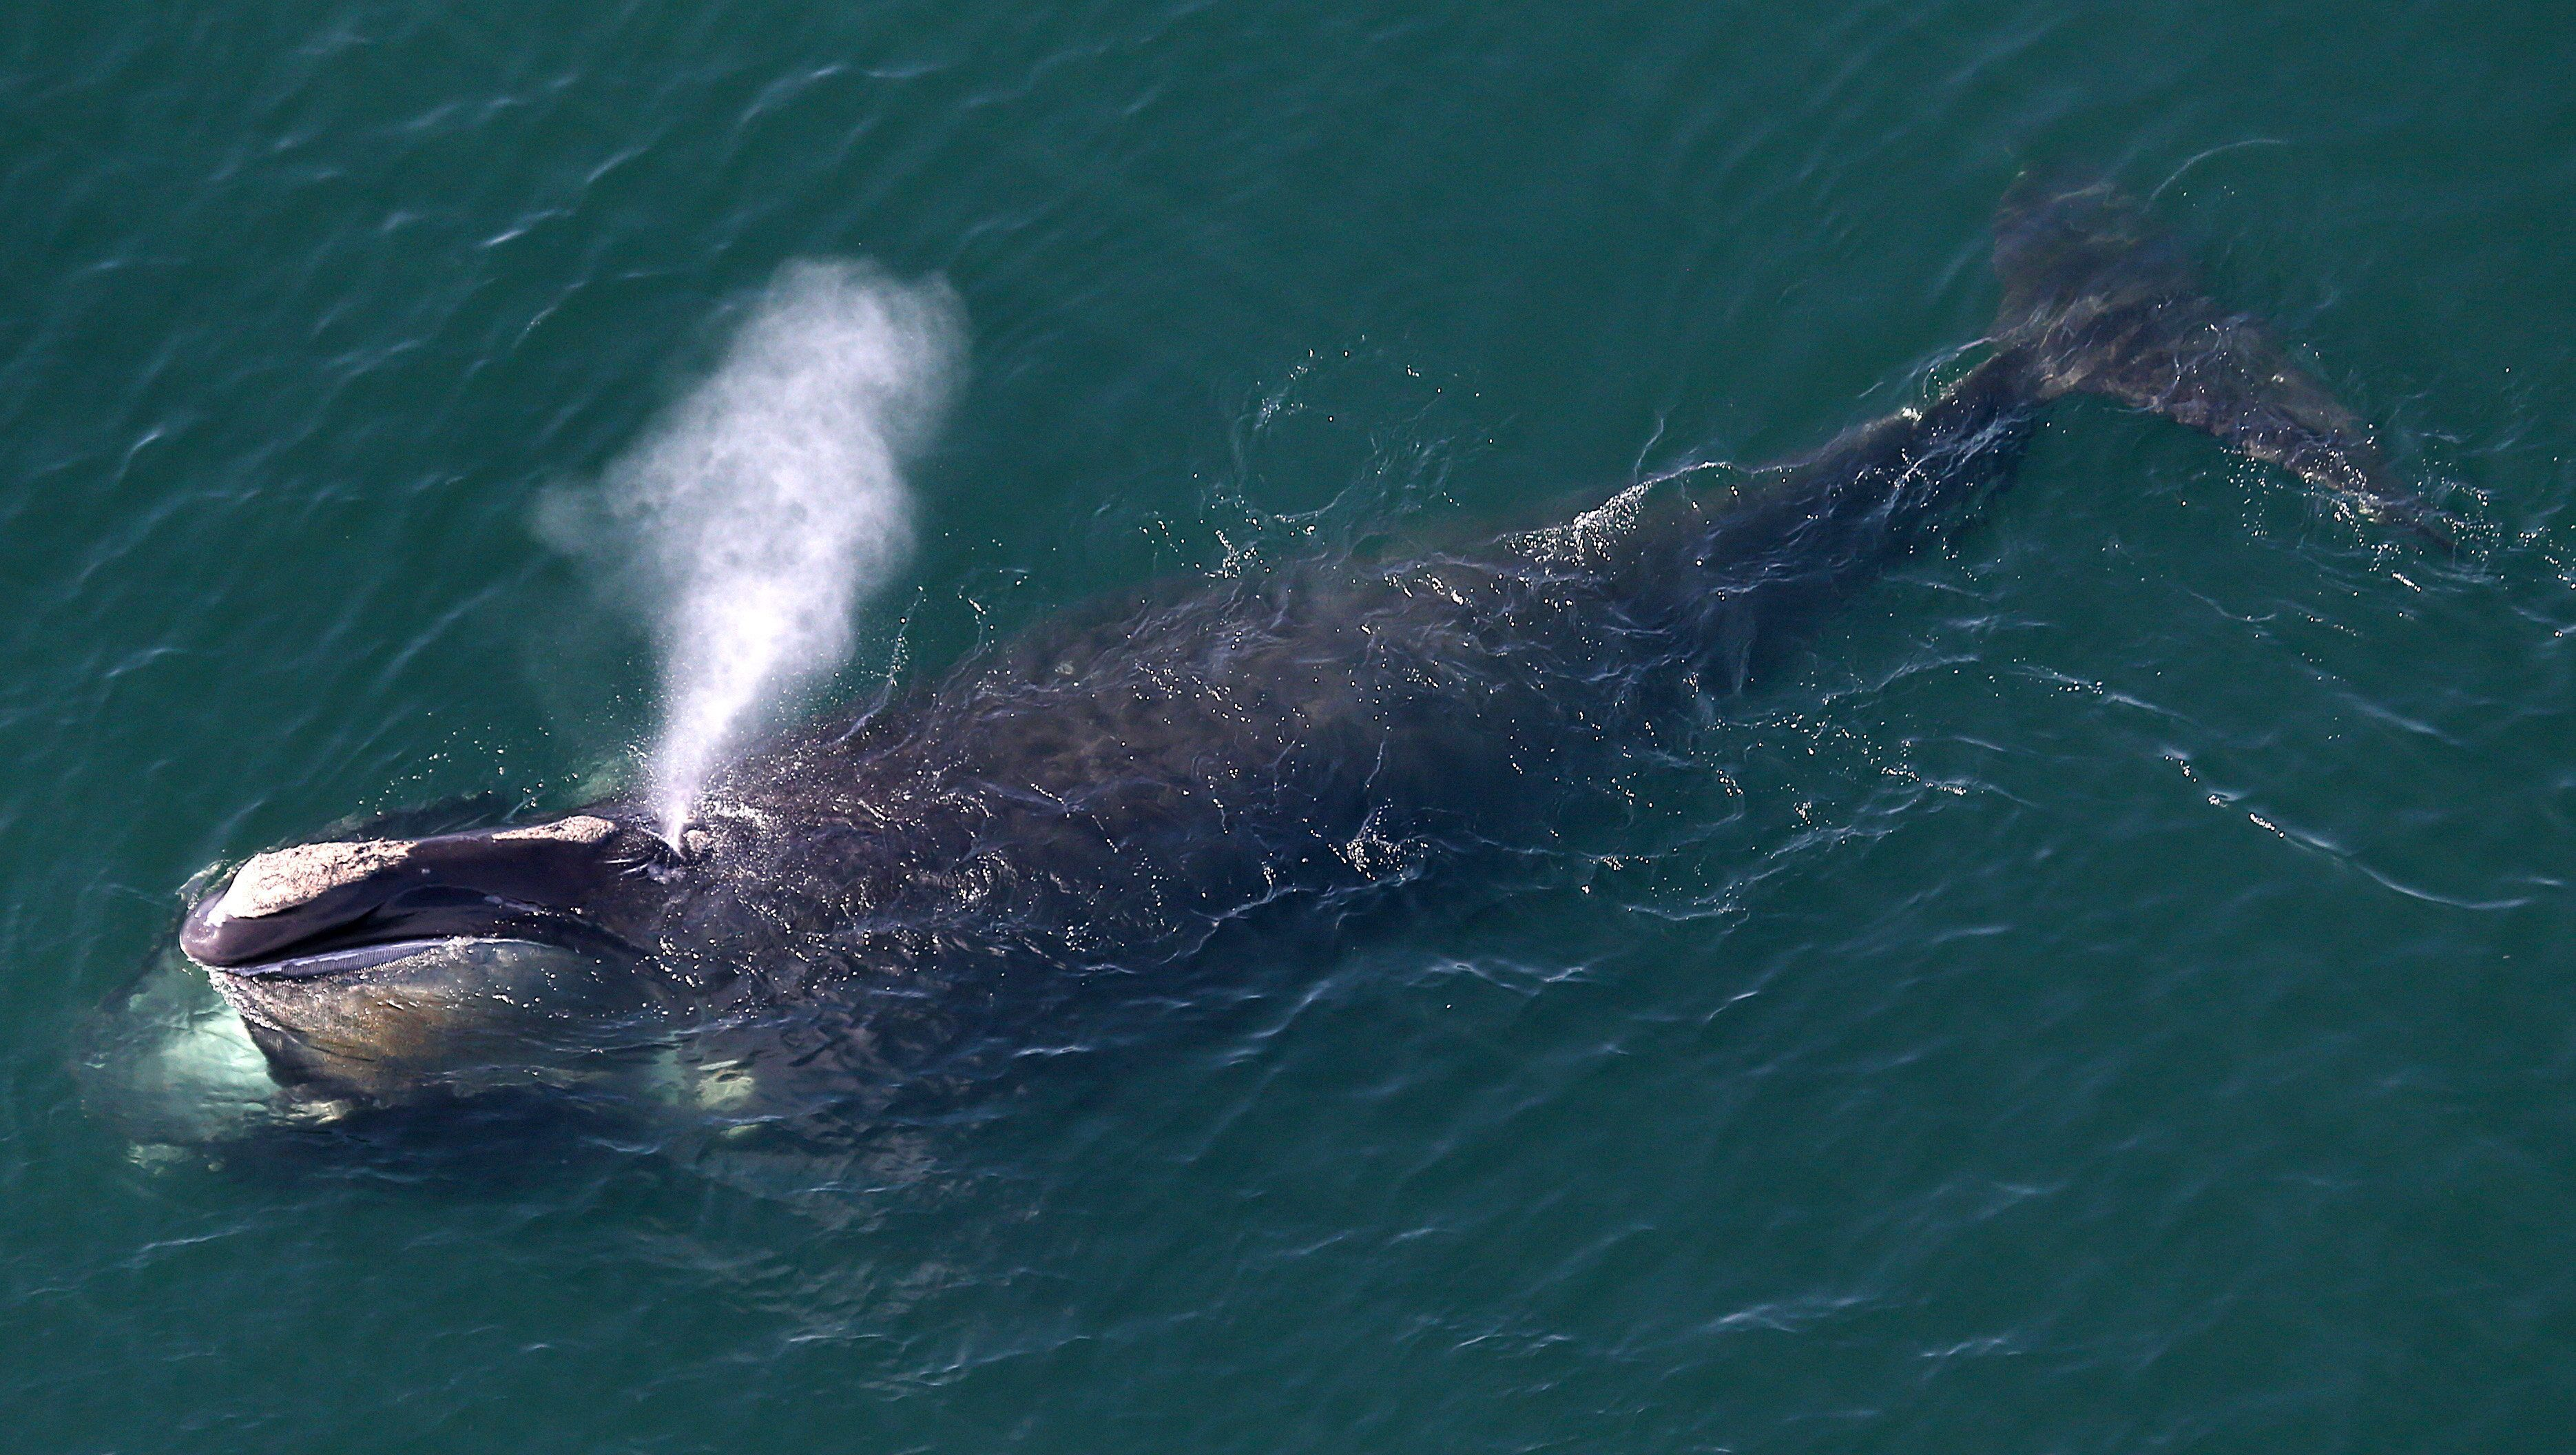 DUXBURY, MA - MAY 6: An aerial view of a right whale erupting from the blow hole while feeding off the shores of Duxbury Beach. There were groups of the North Atlantic right whales swimming off shore. The critically endangered animals are making a comeback since they were nearly hunted to extinction a century ago. They are also making a habit of appearing off the local coastline in the spring. The whales feed on copepods by opening their mouths as they swim through masses of the tiny, but fat-rich, creatures. (Photo by David L. Ryan/The Boston Globe via Getty Images)